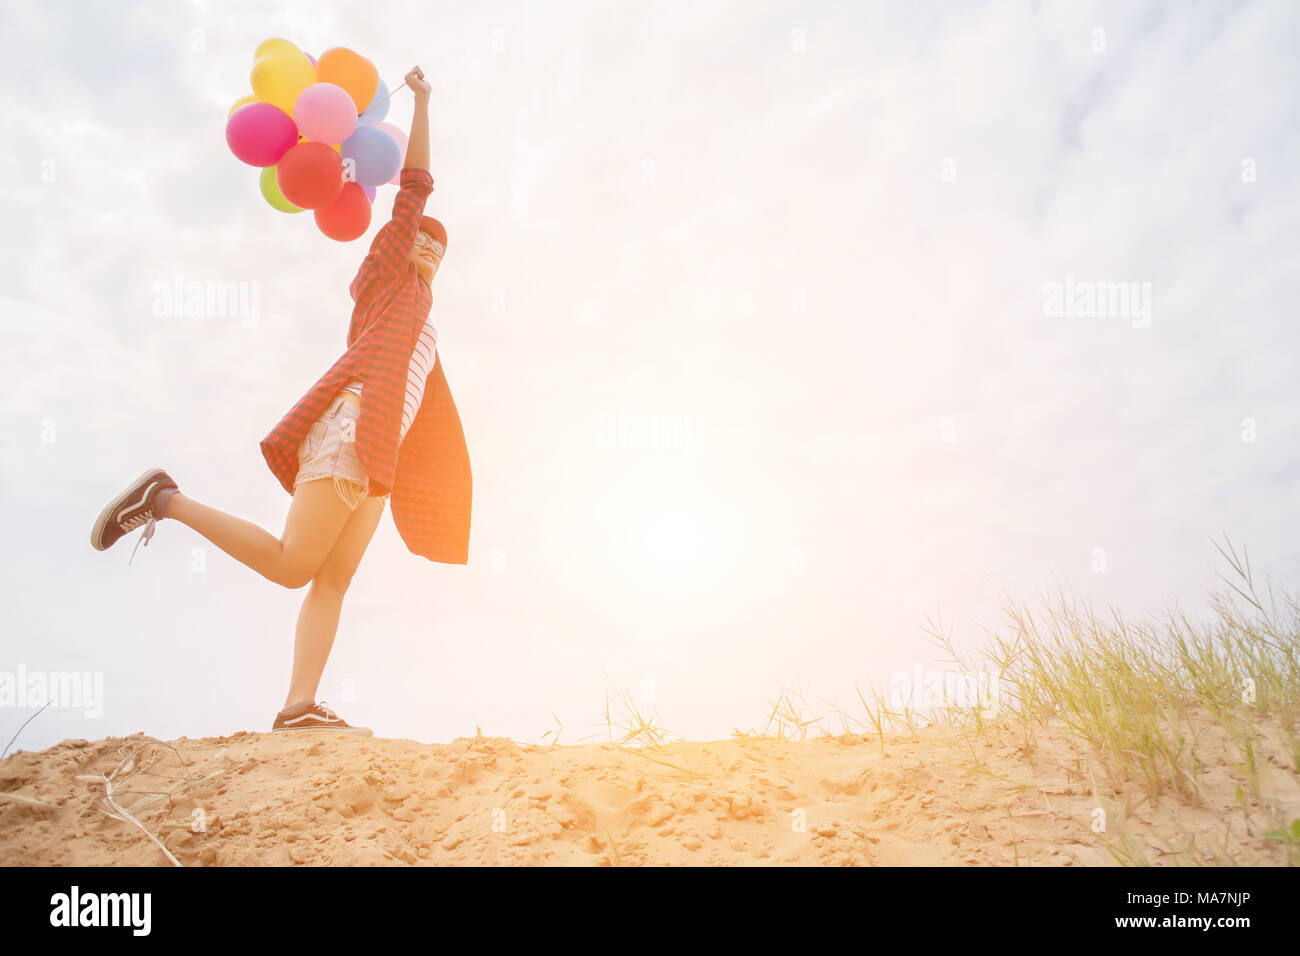 Teenage girls holding colorful balloons in the bright sky and smiled happily. - Stock Image